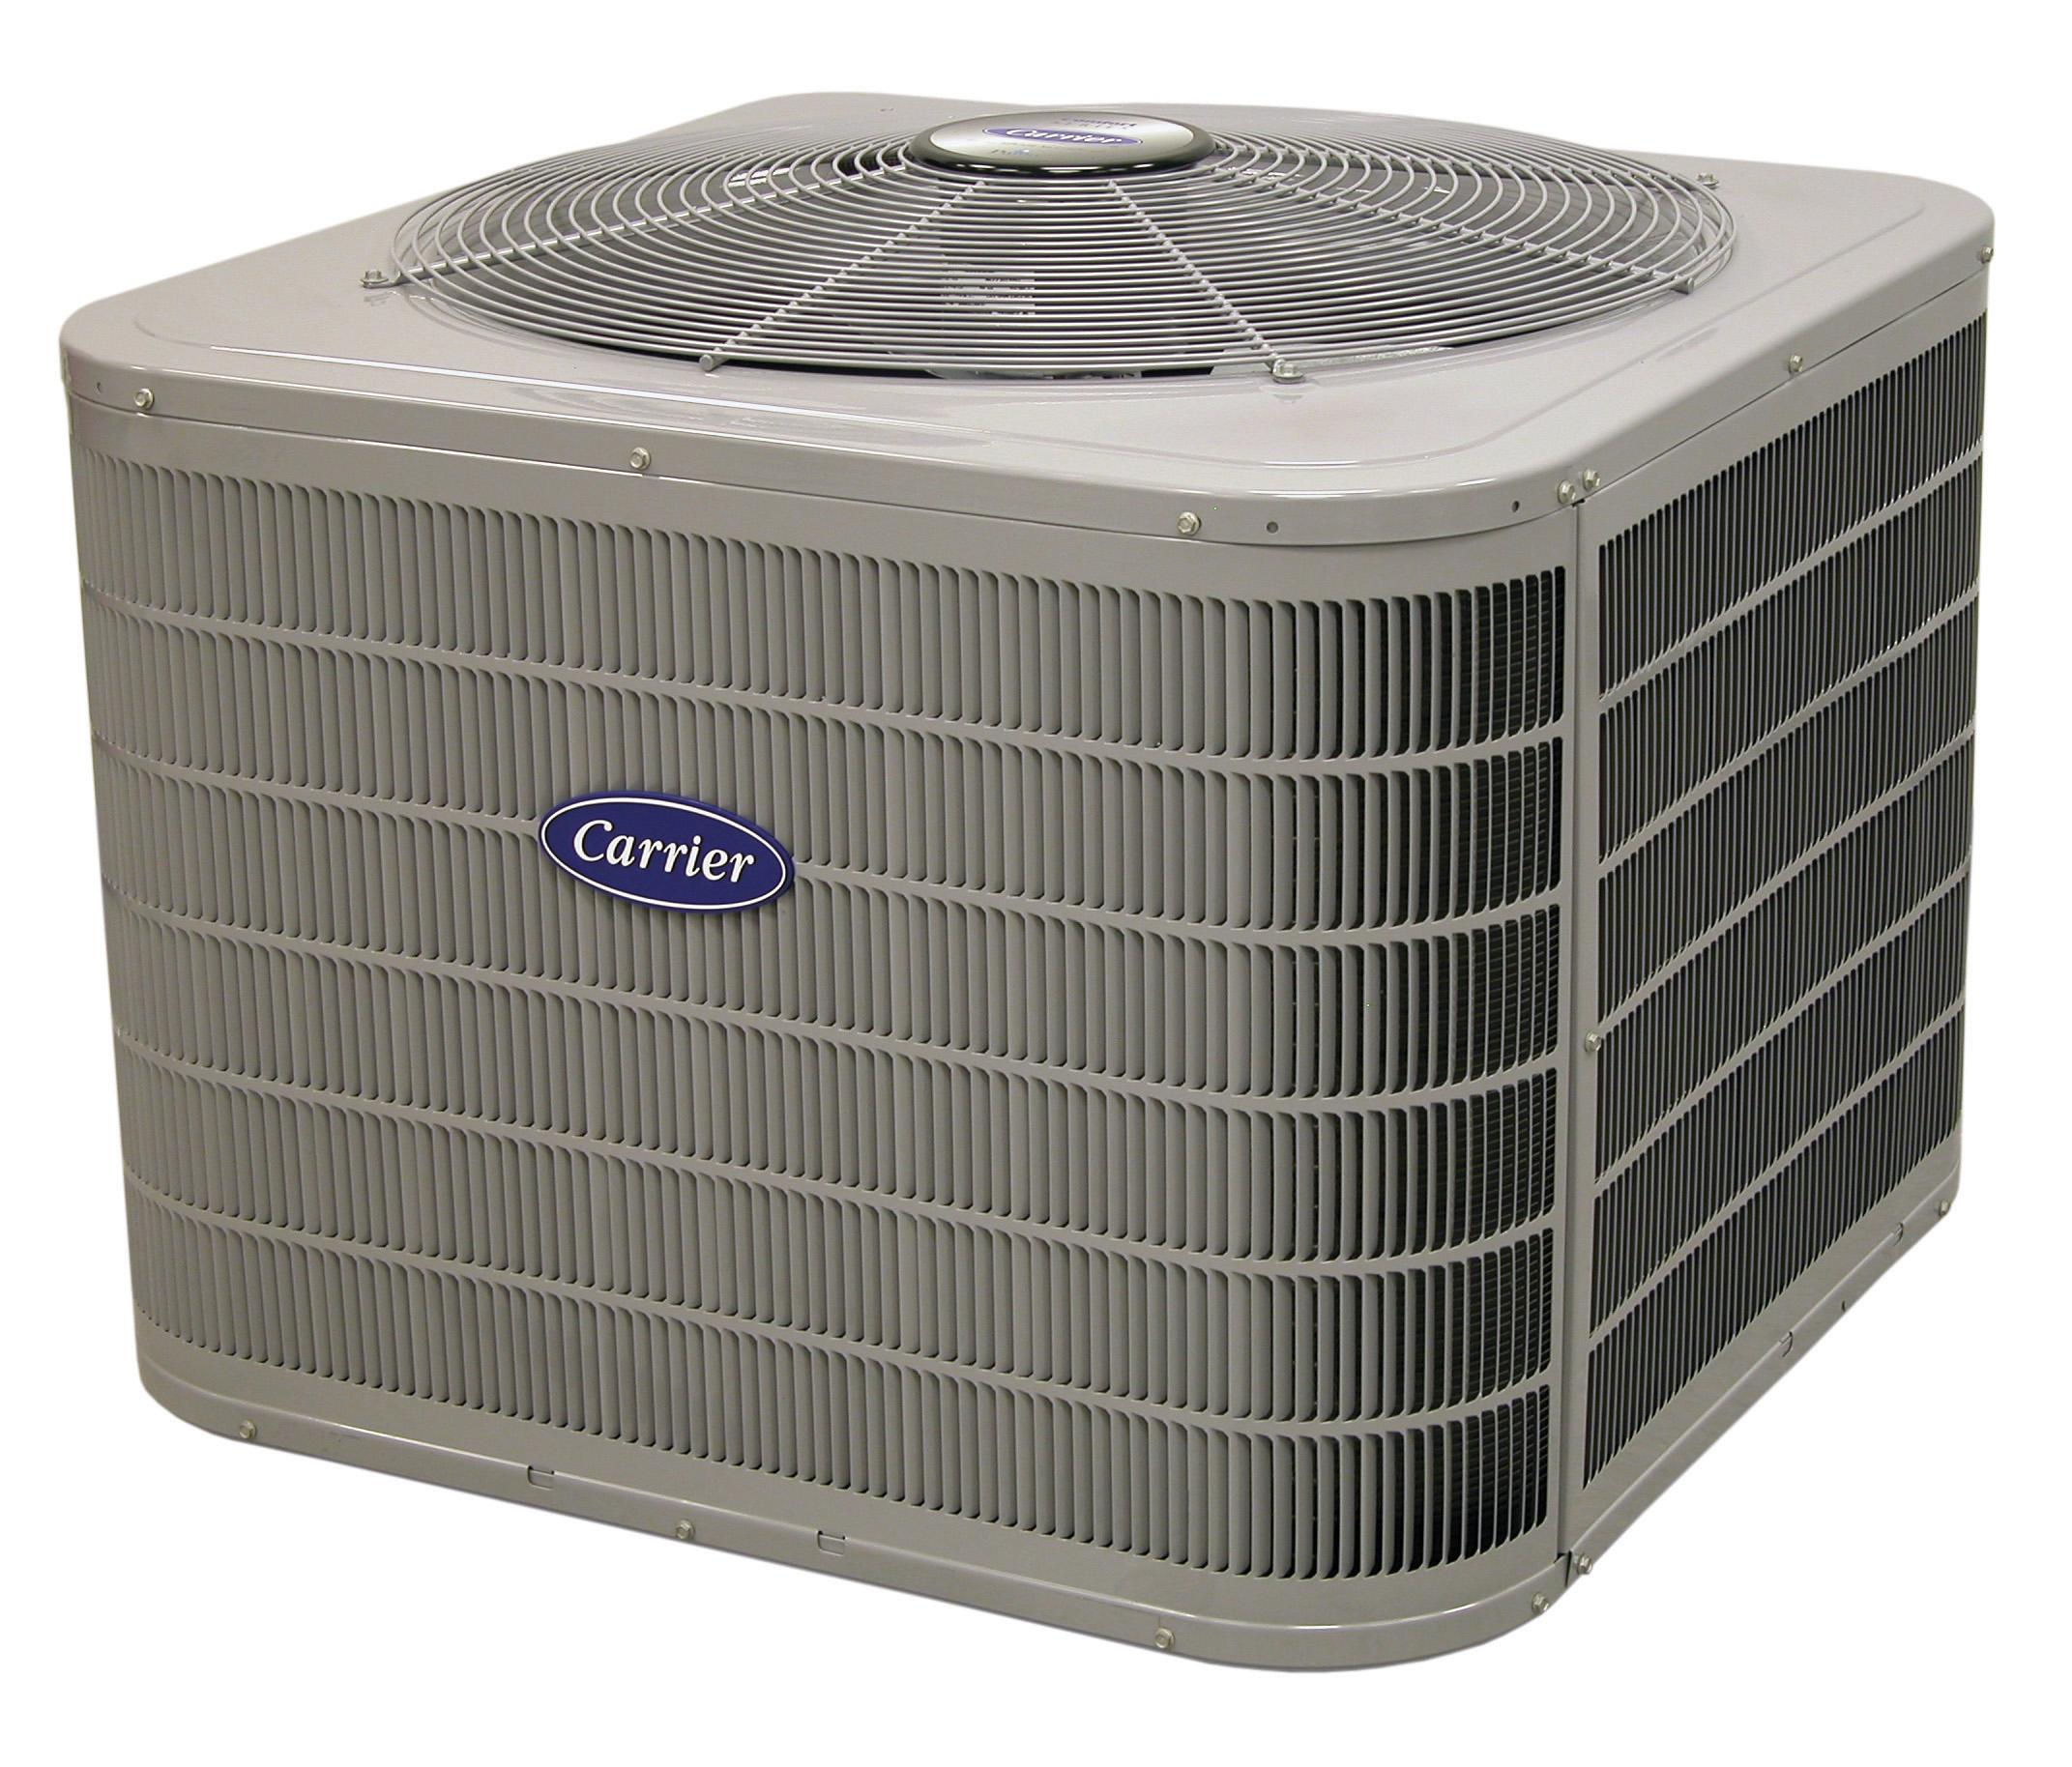 High-efficiency air conditioning in Winston Salem